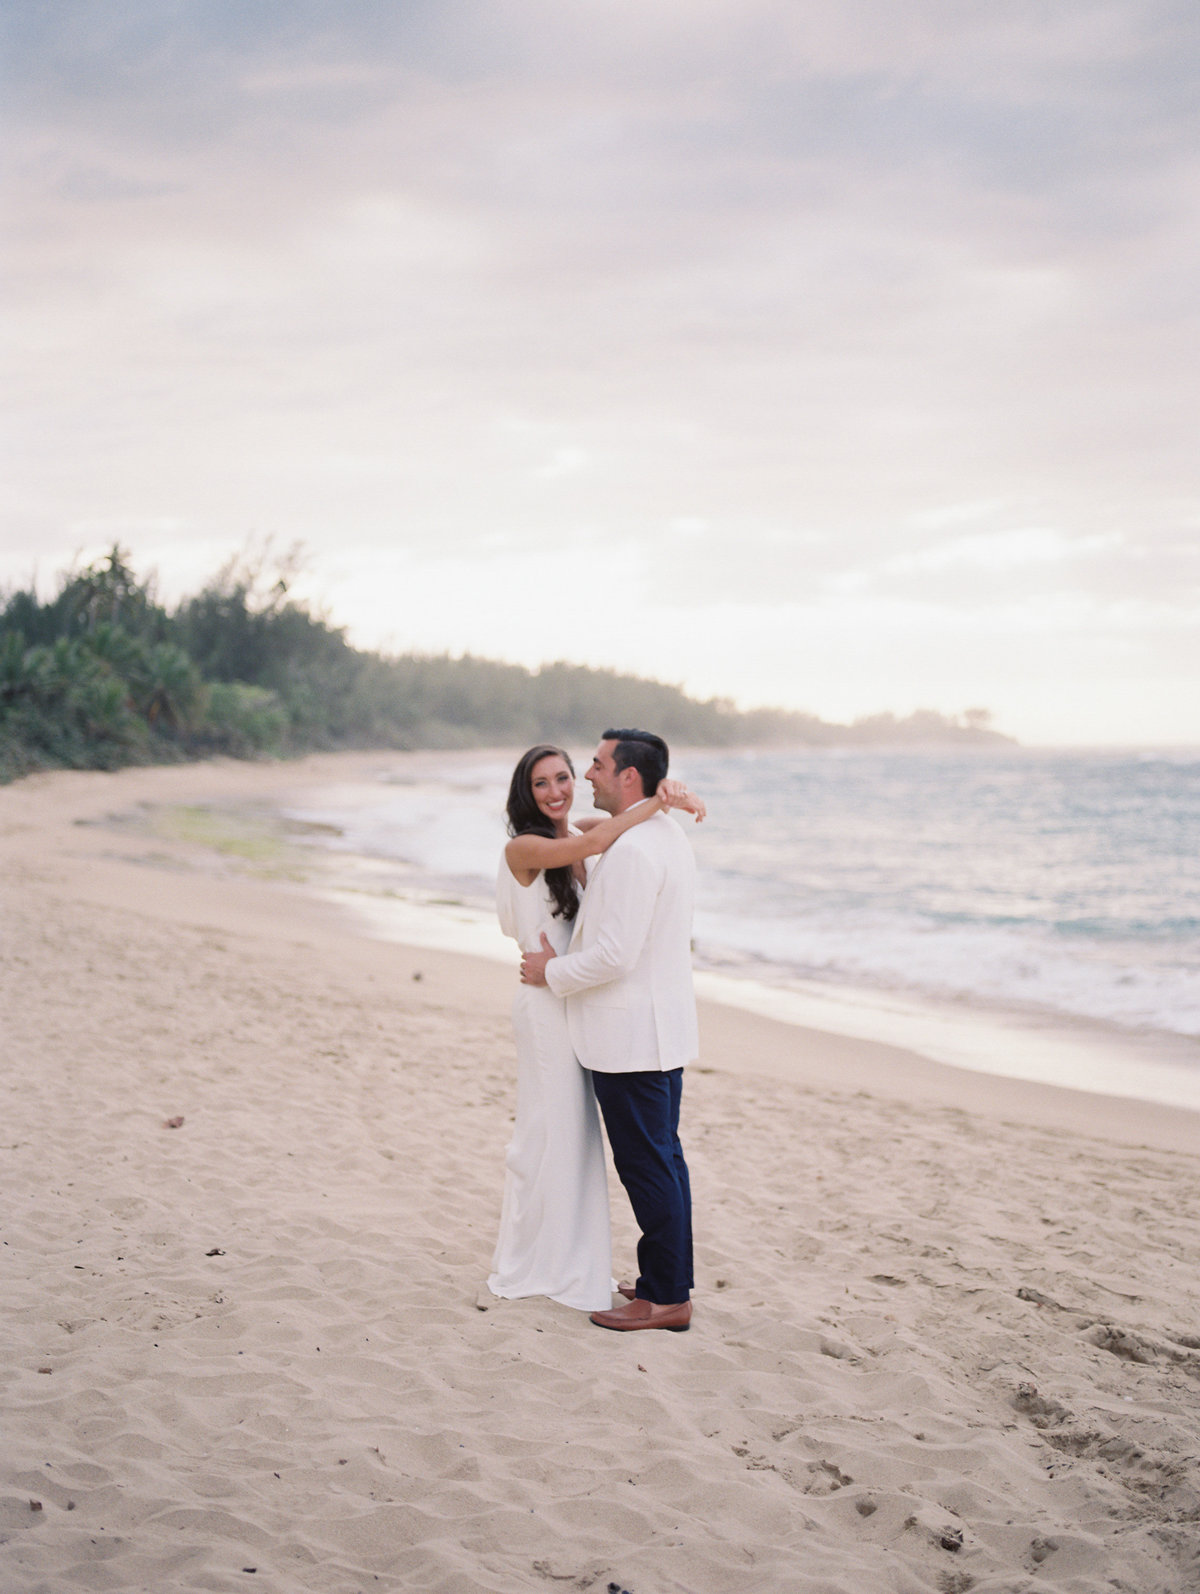 puertoricodestinationwedding - 44